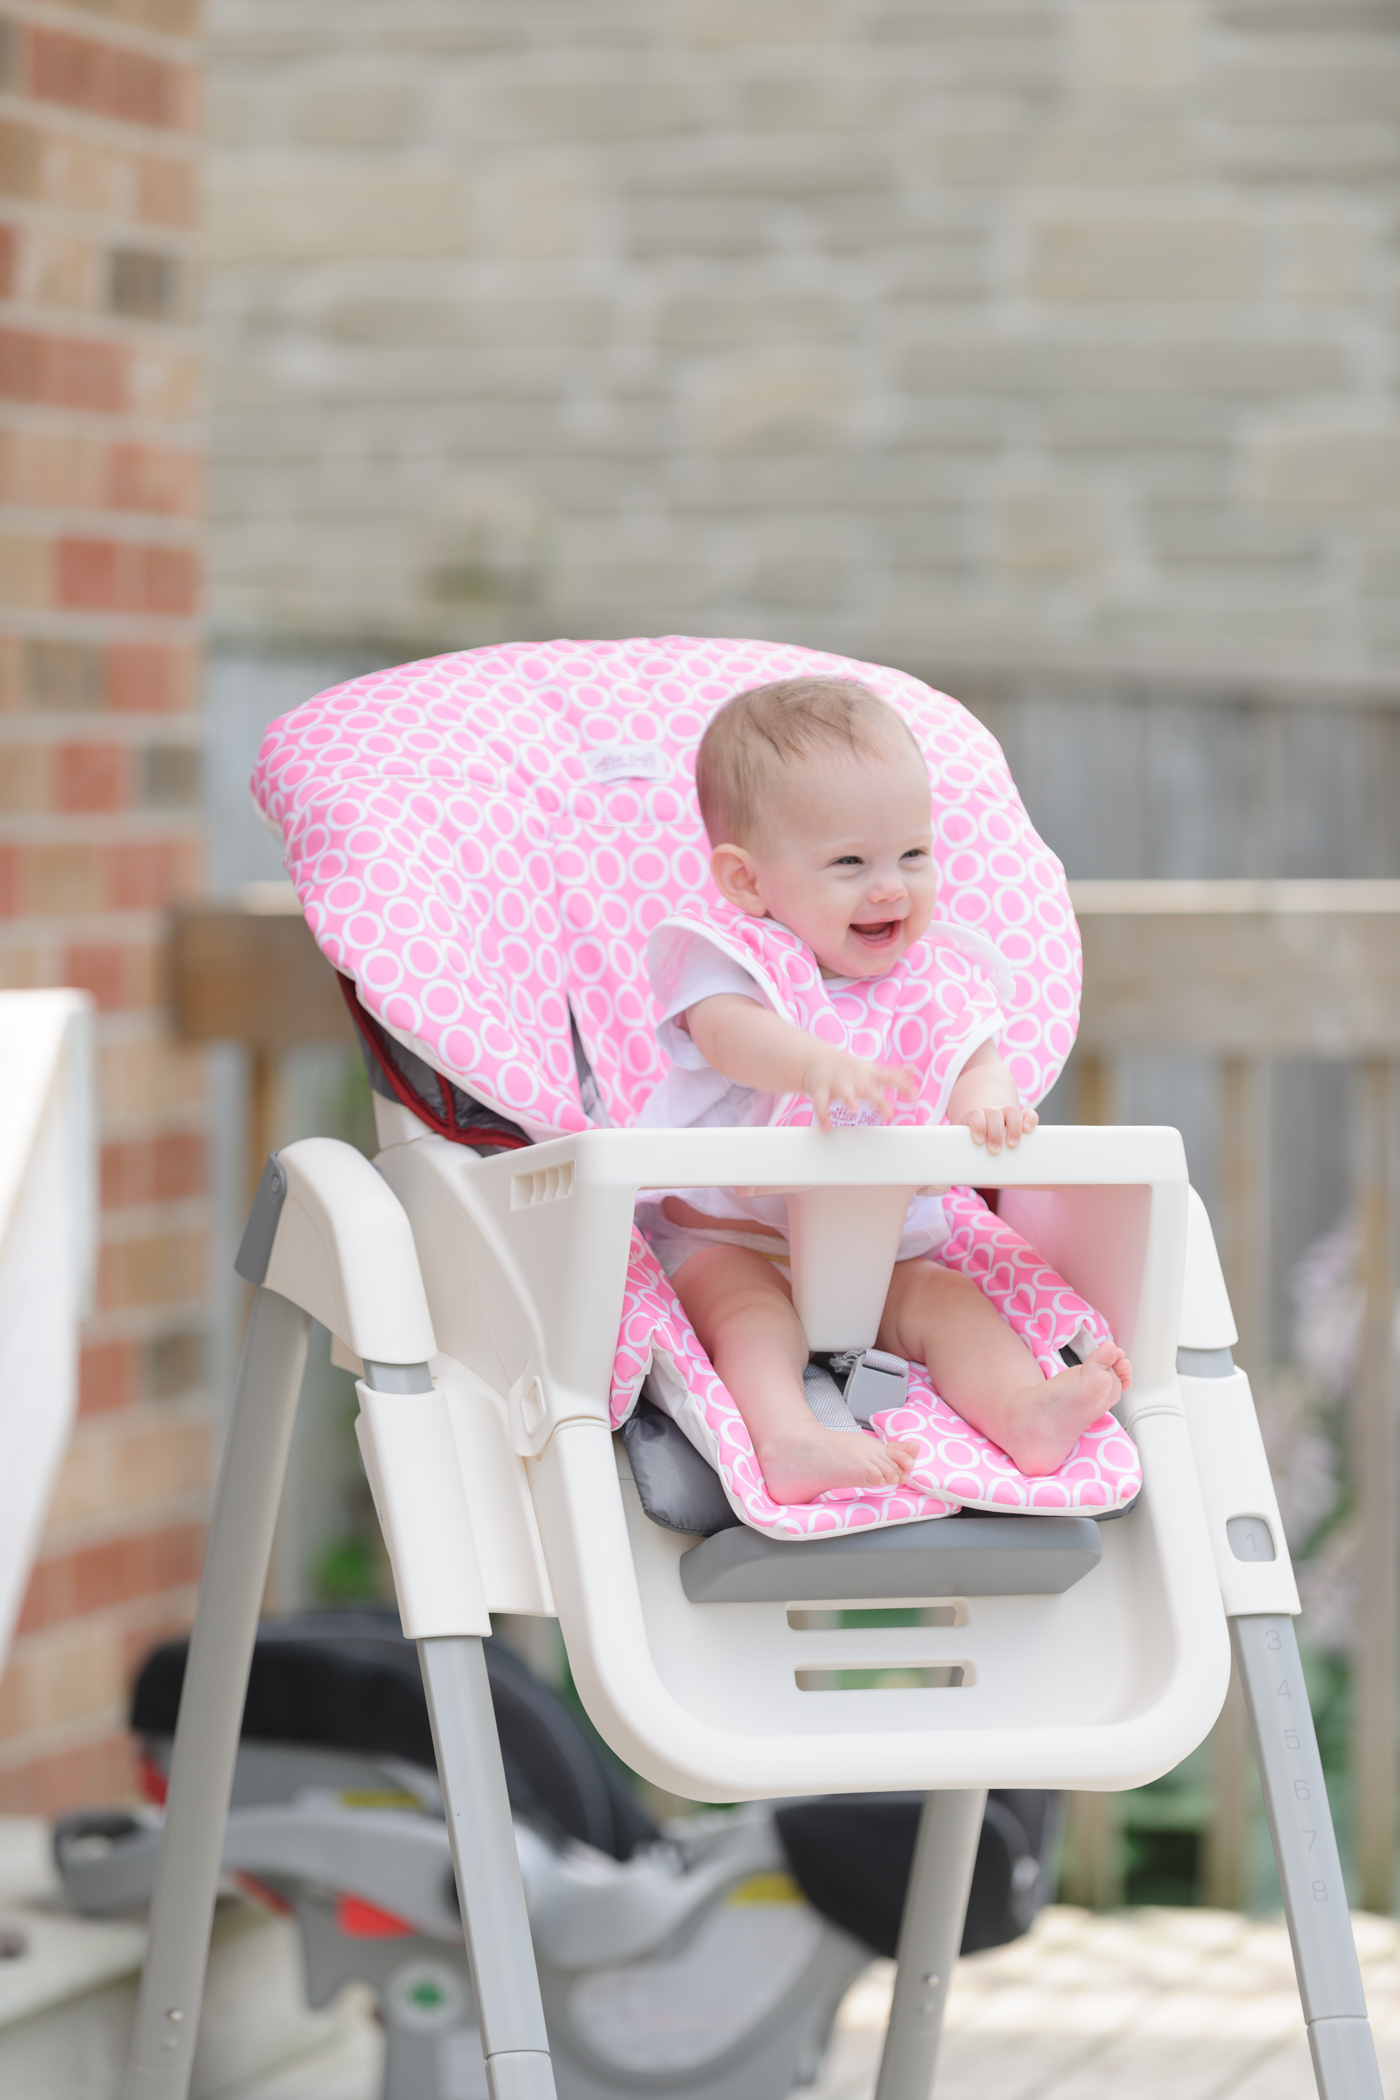 Amazon.com: high chair cover